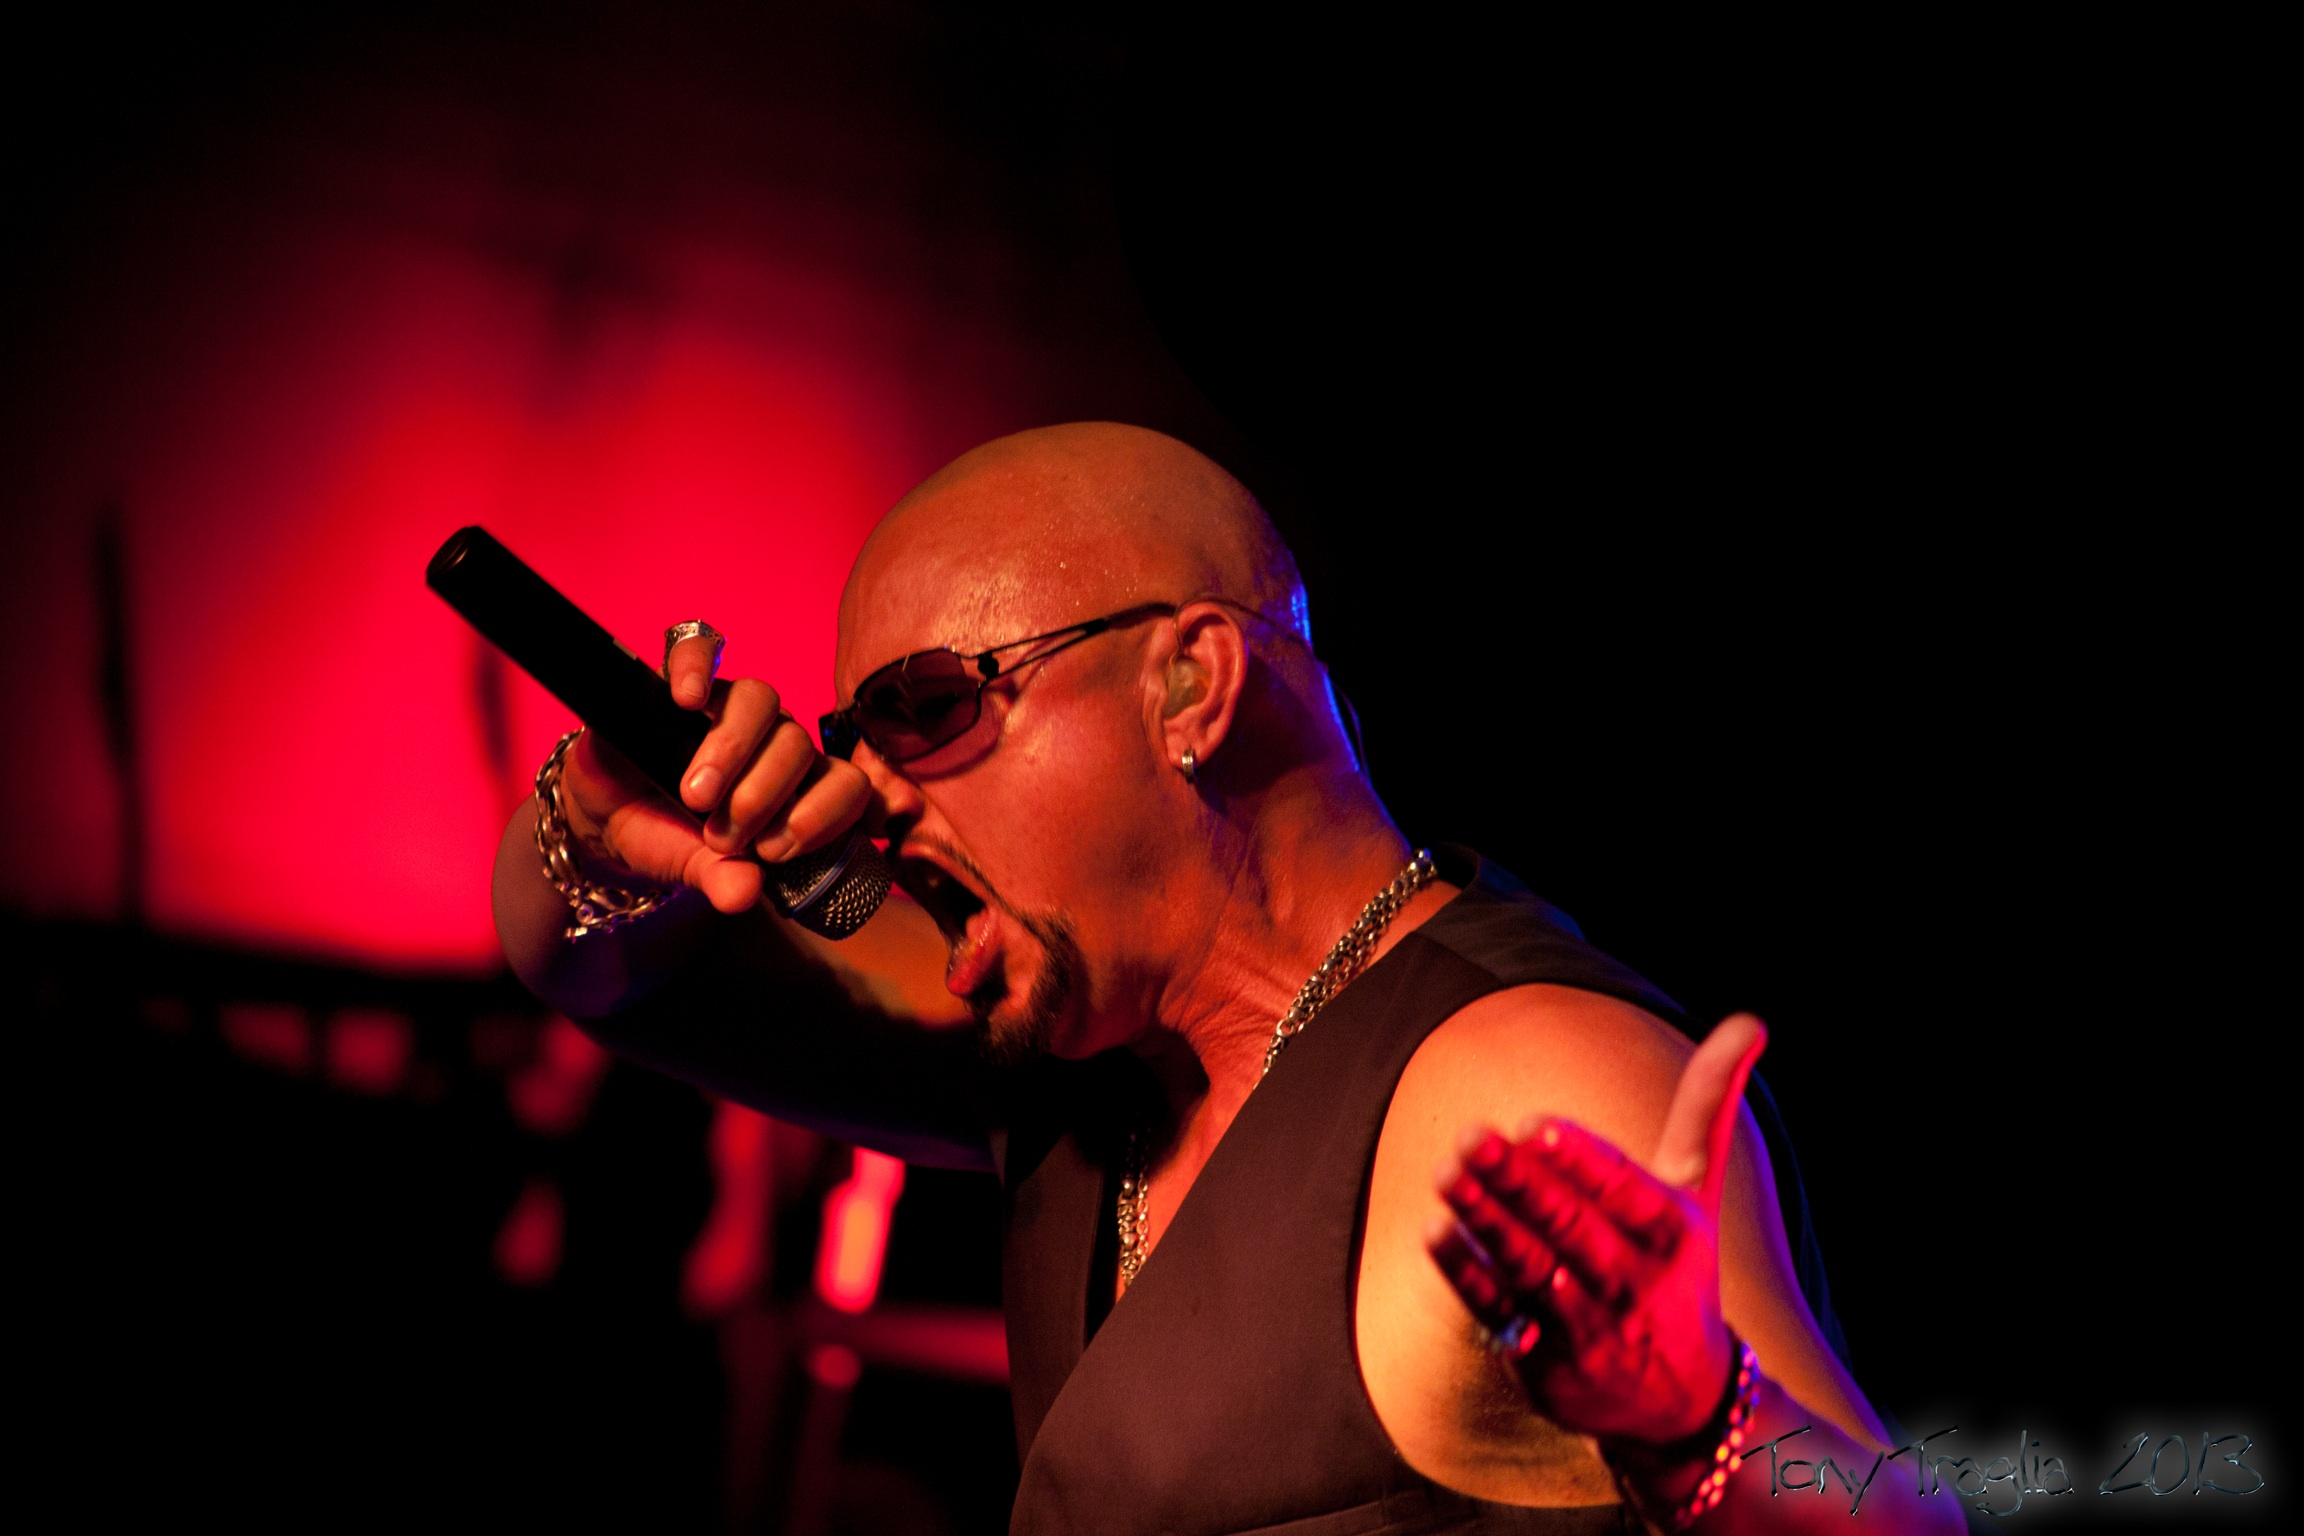 AN INTERVIEW WITH GEOFF TATE OF QUEENSRYCHE